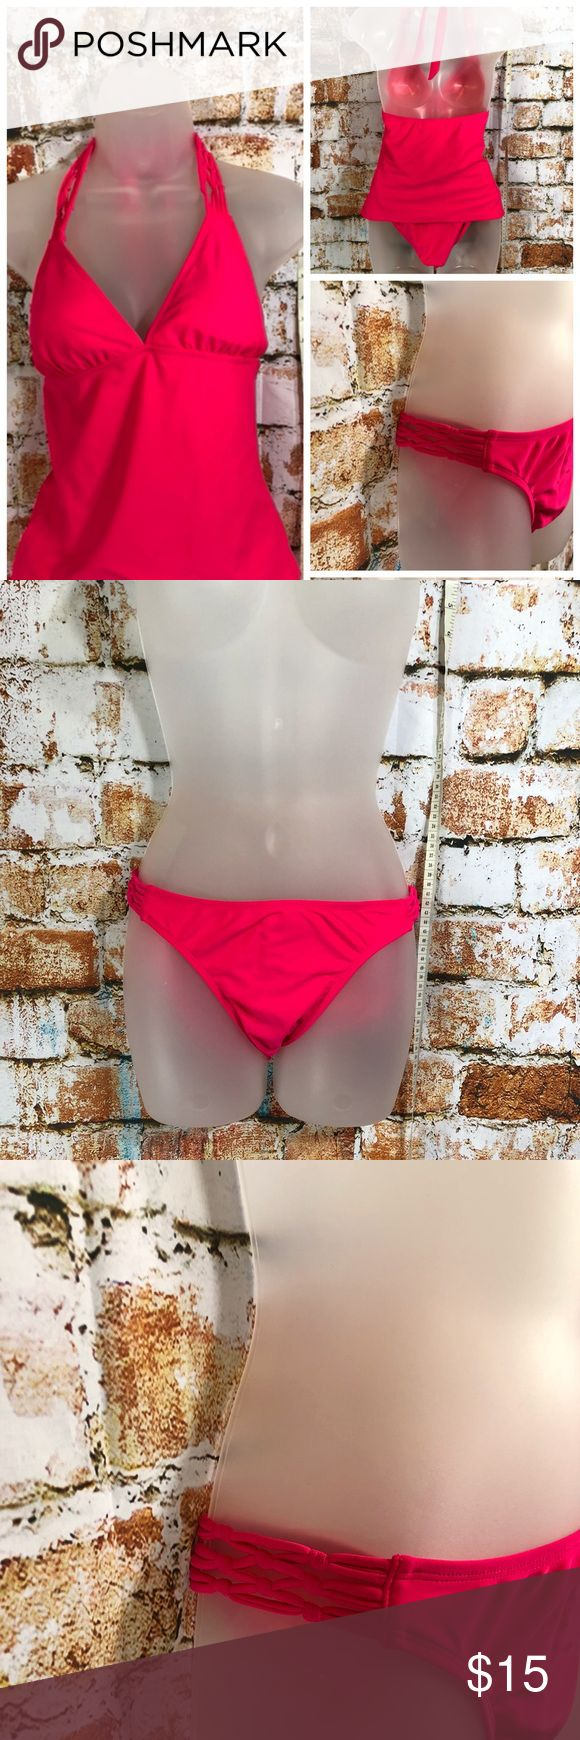 NWT Bikini Bottom You'll look hot in these hot pink bikini bottoms that feature a lattice side.  Matching halter tankini top available in separate listing. Old Navy Swim Bikinis